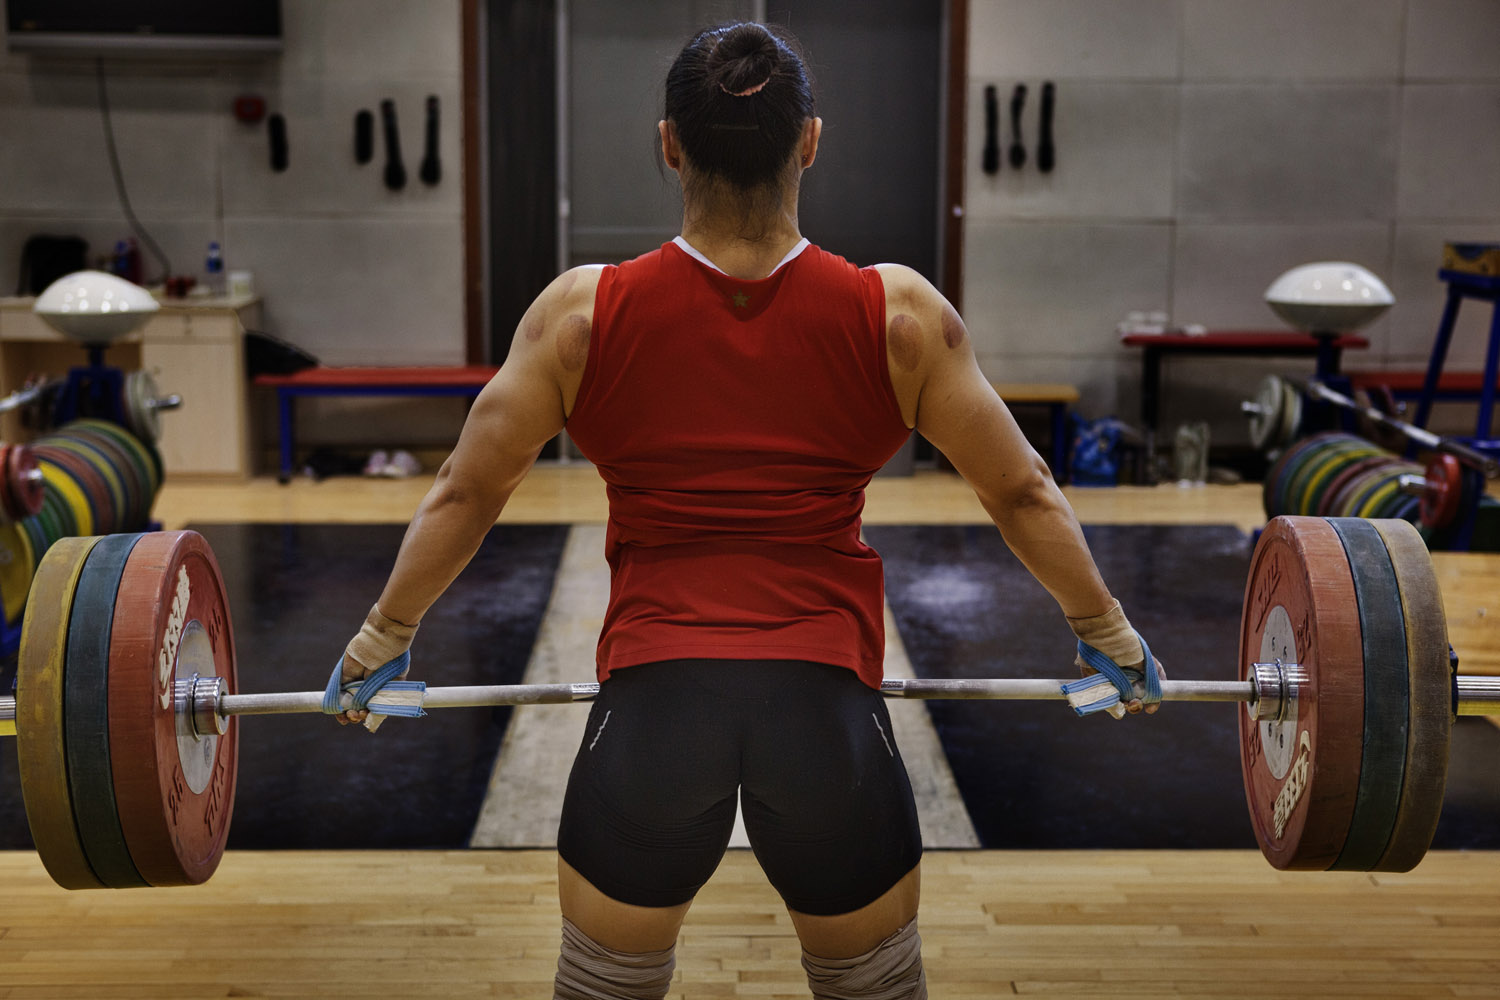 Kang Yue is seen training for the Chinese national women's weight-lifting team in May 2012 at the national sports training center in Beijing. The 30 athletes who make up the team were competing for spots on the Olympic squad, for which Yue did not qualify.